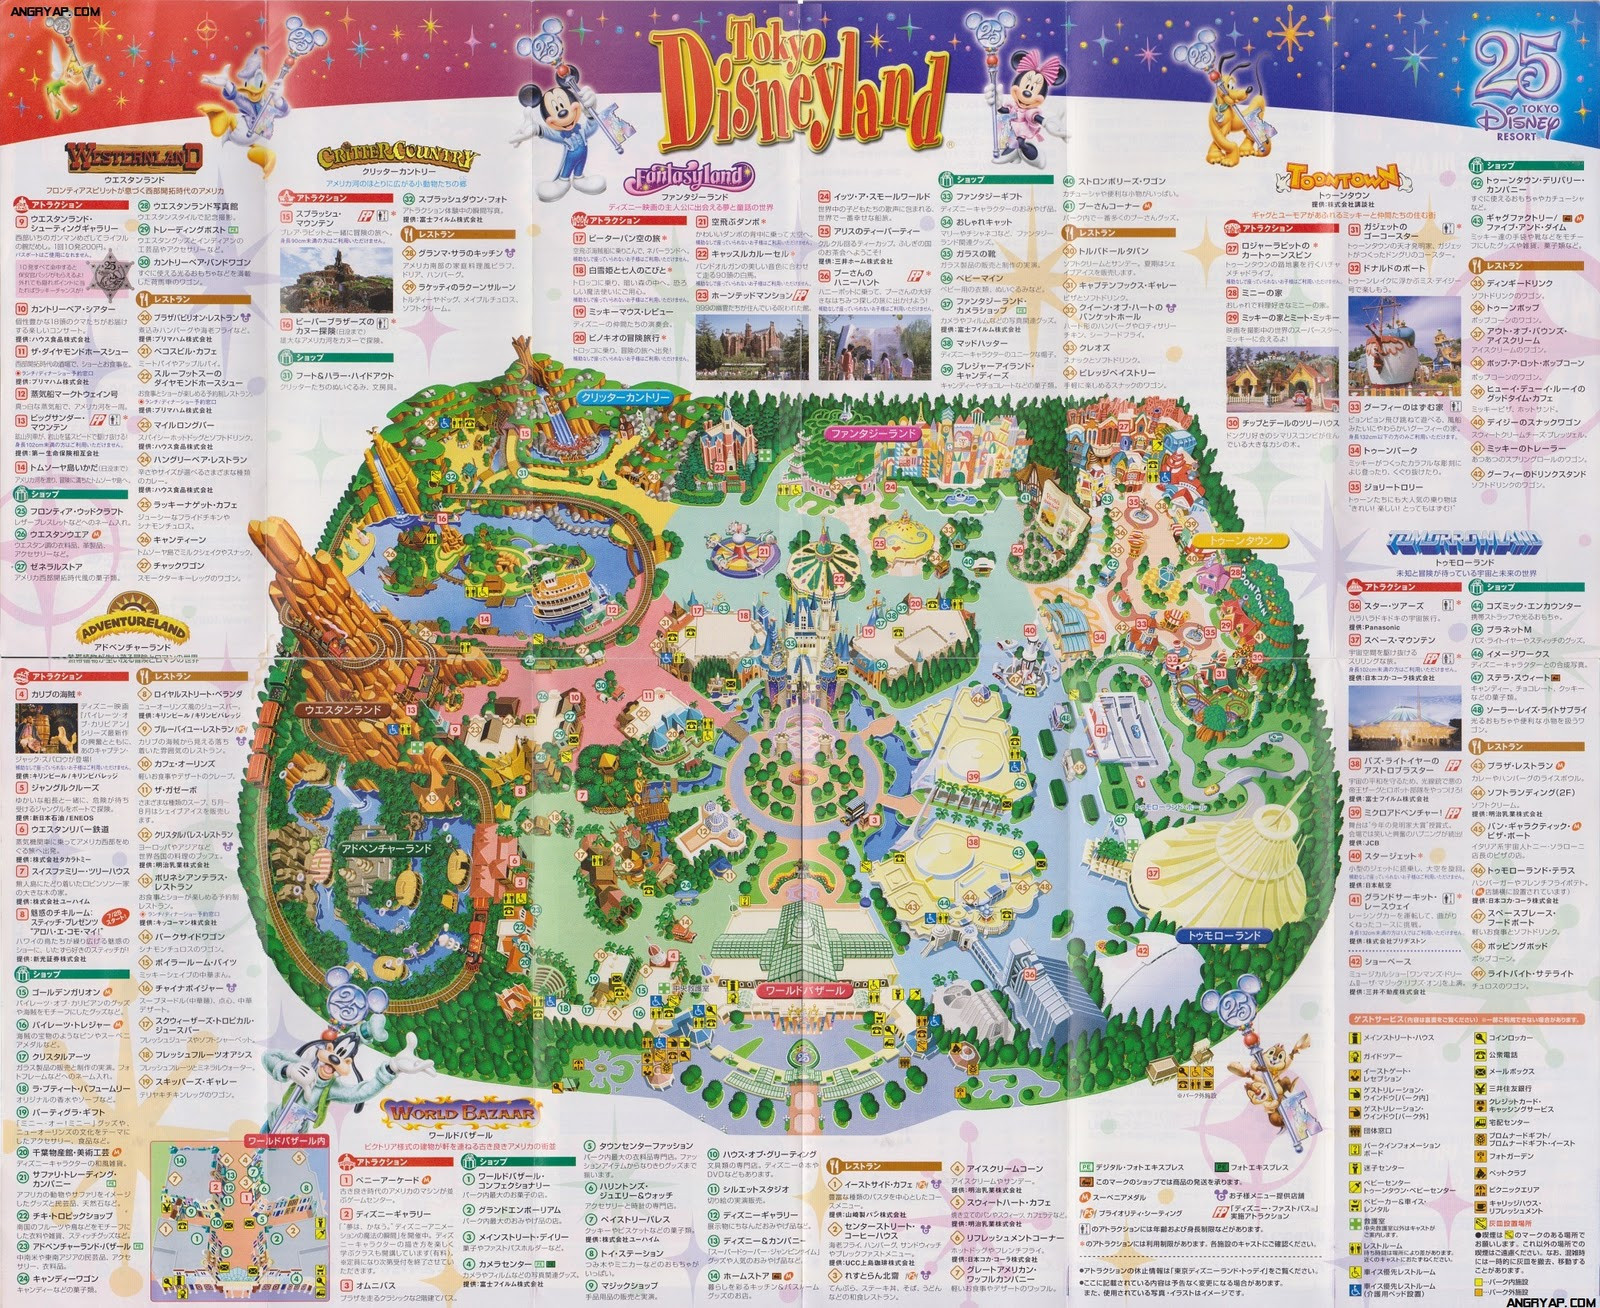 Printable Map Disneyland California Beautiful Disneyland Park California Map Printable Download Epub Pdf Libs Map